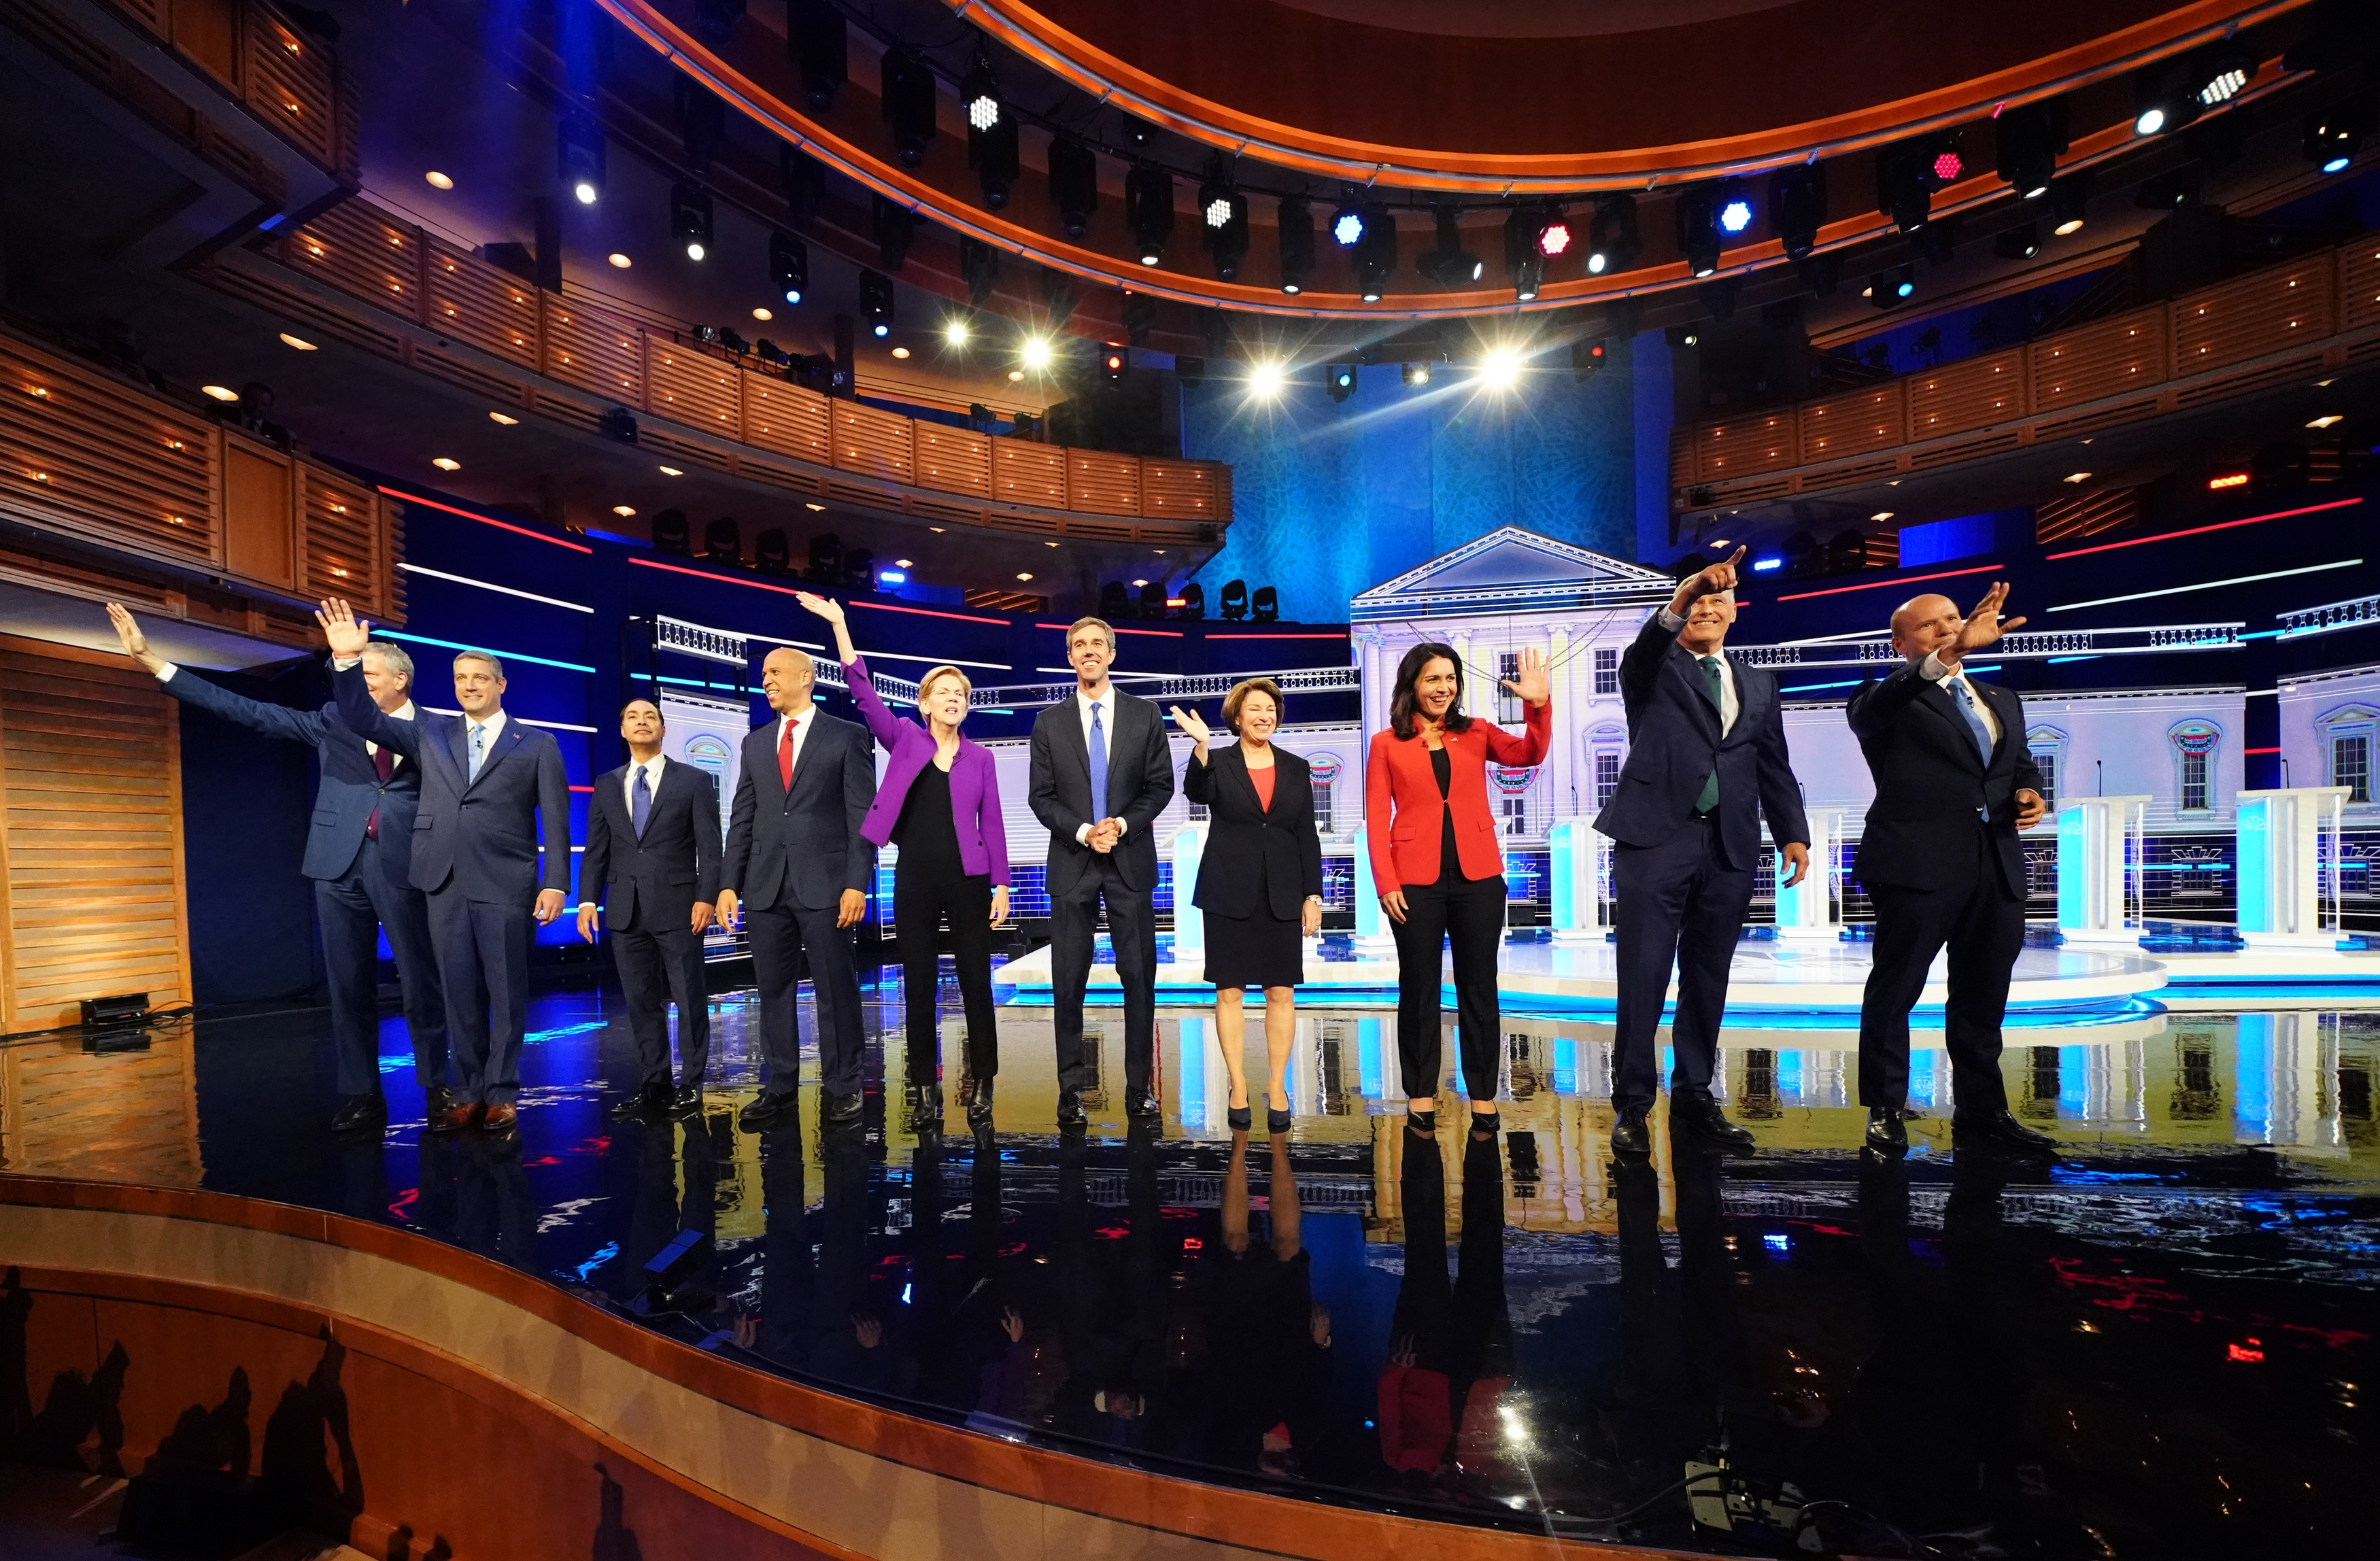 Democratic 2020 presidential candidates New York City Mayor Bill de Blasio, U.S. Rep. Tim Ryan, former HUD Secretary Julian Castro, U.S. Senator Cory Booker, U.S. Senator Elizabeth Warren, former U.S. Rep. Beto O'Rourke, Senator Amy Klobuchar, U.S. Rep. Tulsi Gabbard, Washington Governor Jay Inslee and former U.S. Rep. John Delaney pose together before the start of the first U.S. 2020 presidential election Democratic candidates debate in Miami, Florida, U.S., June 26, 2019. REUTERS/Carlo Allegri